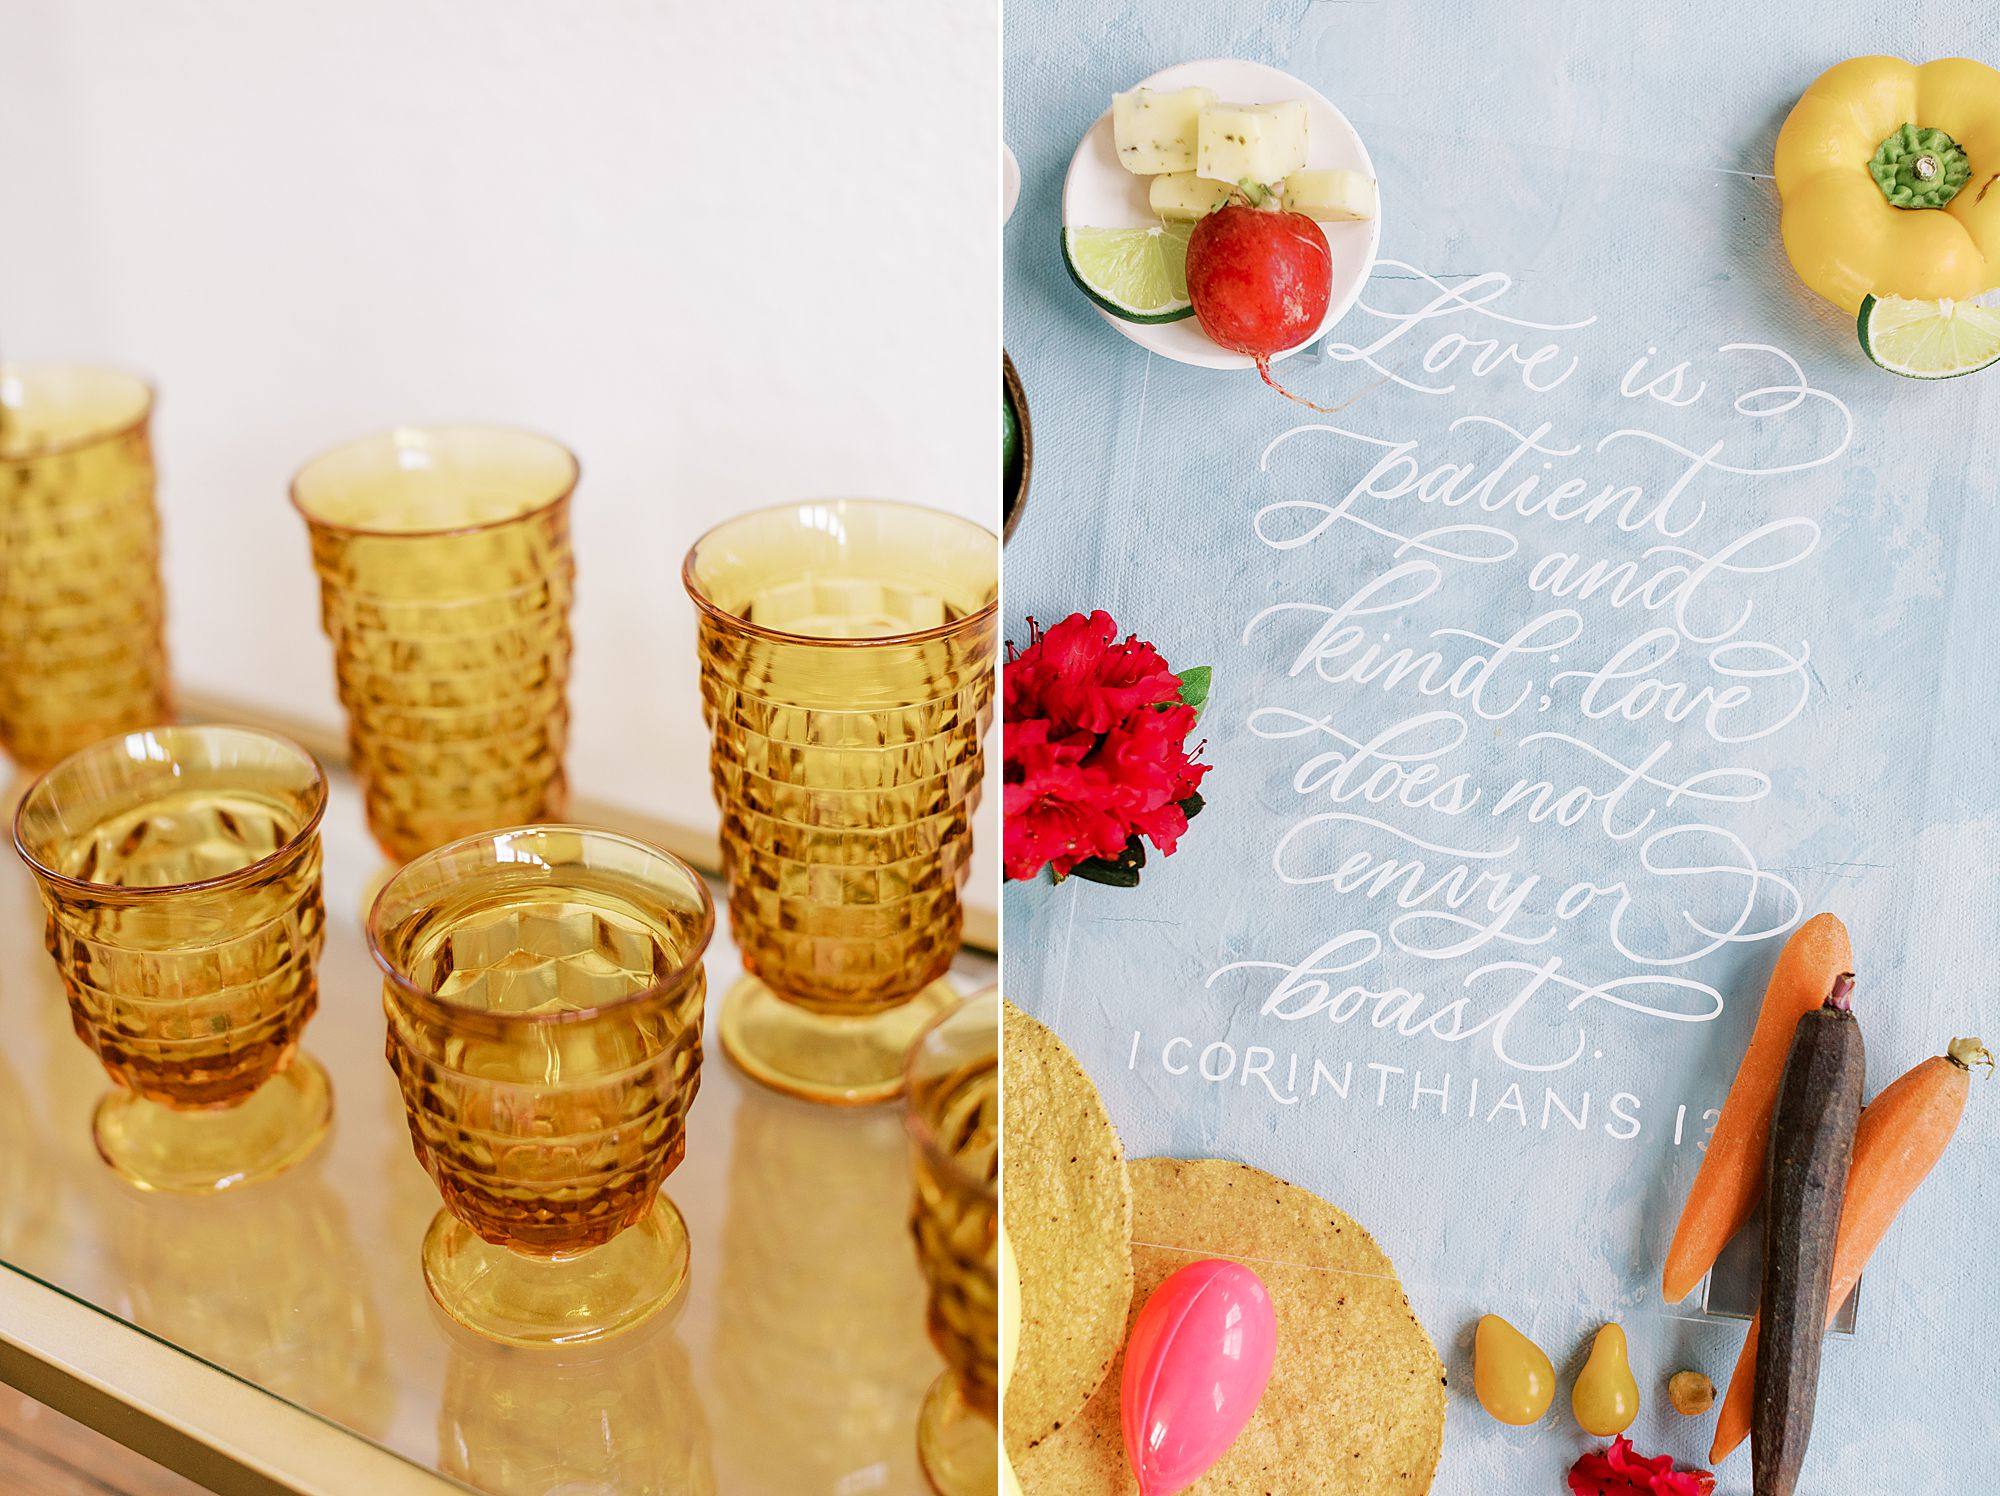 Cinco De Mayo Inspiration for Your FIesta - Party Crush Studio and Ashley Baumgartner_0014.jpg